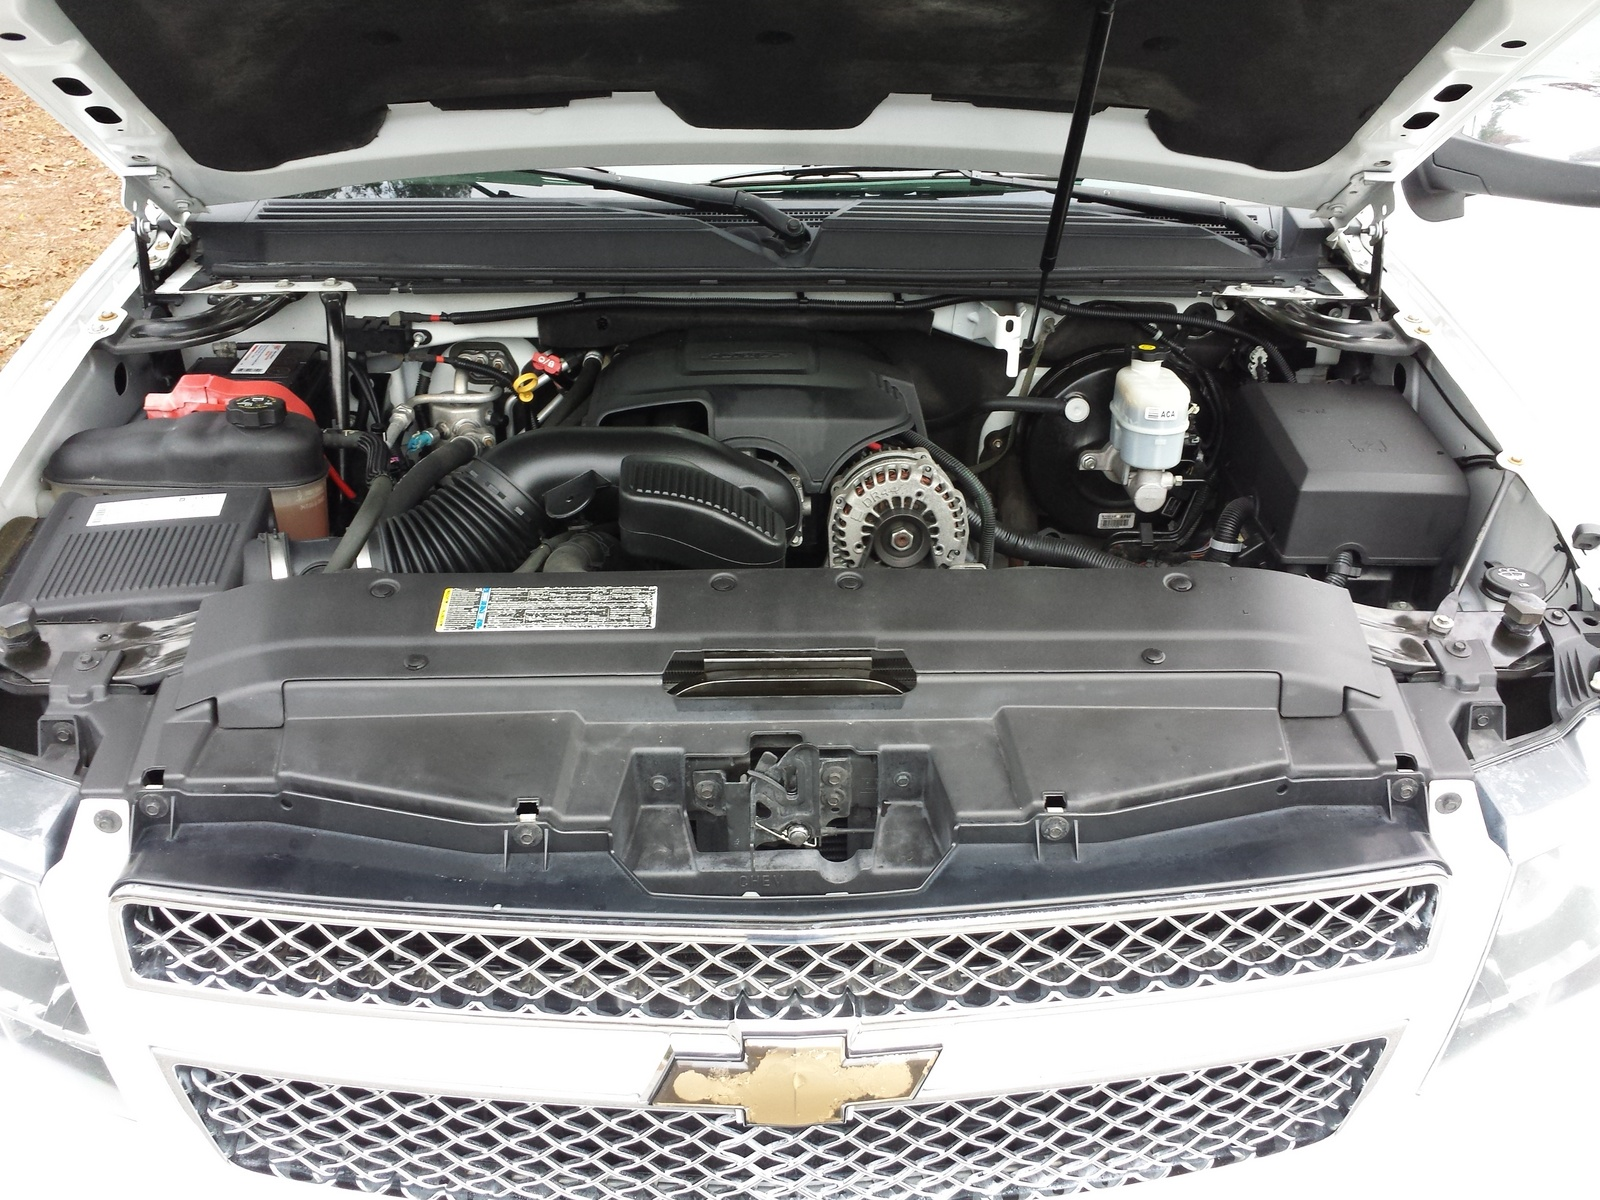 Picture of 2008 Chevrolet Suburban LTZ 1500, engine